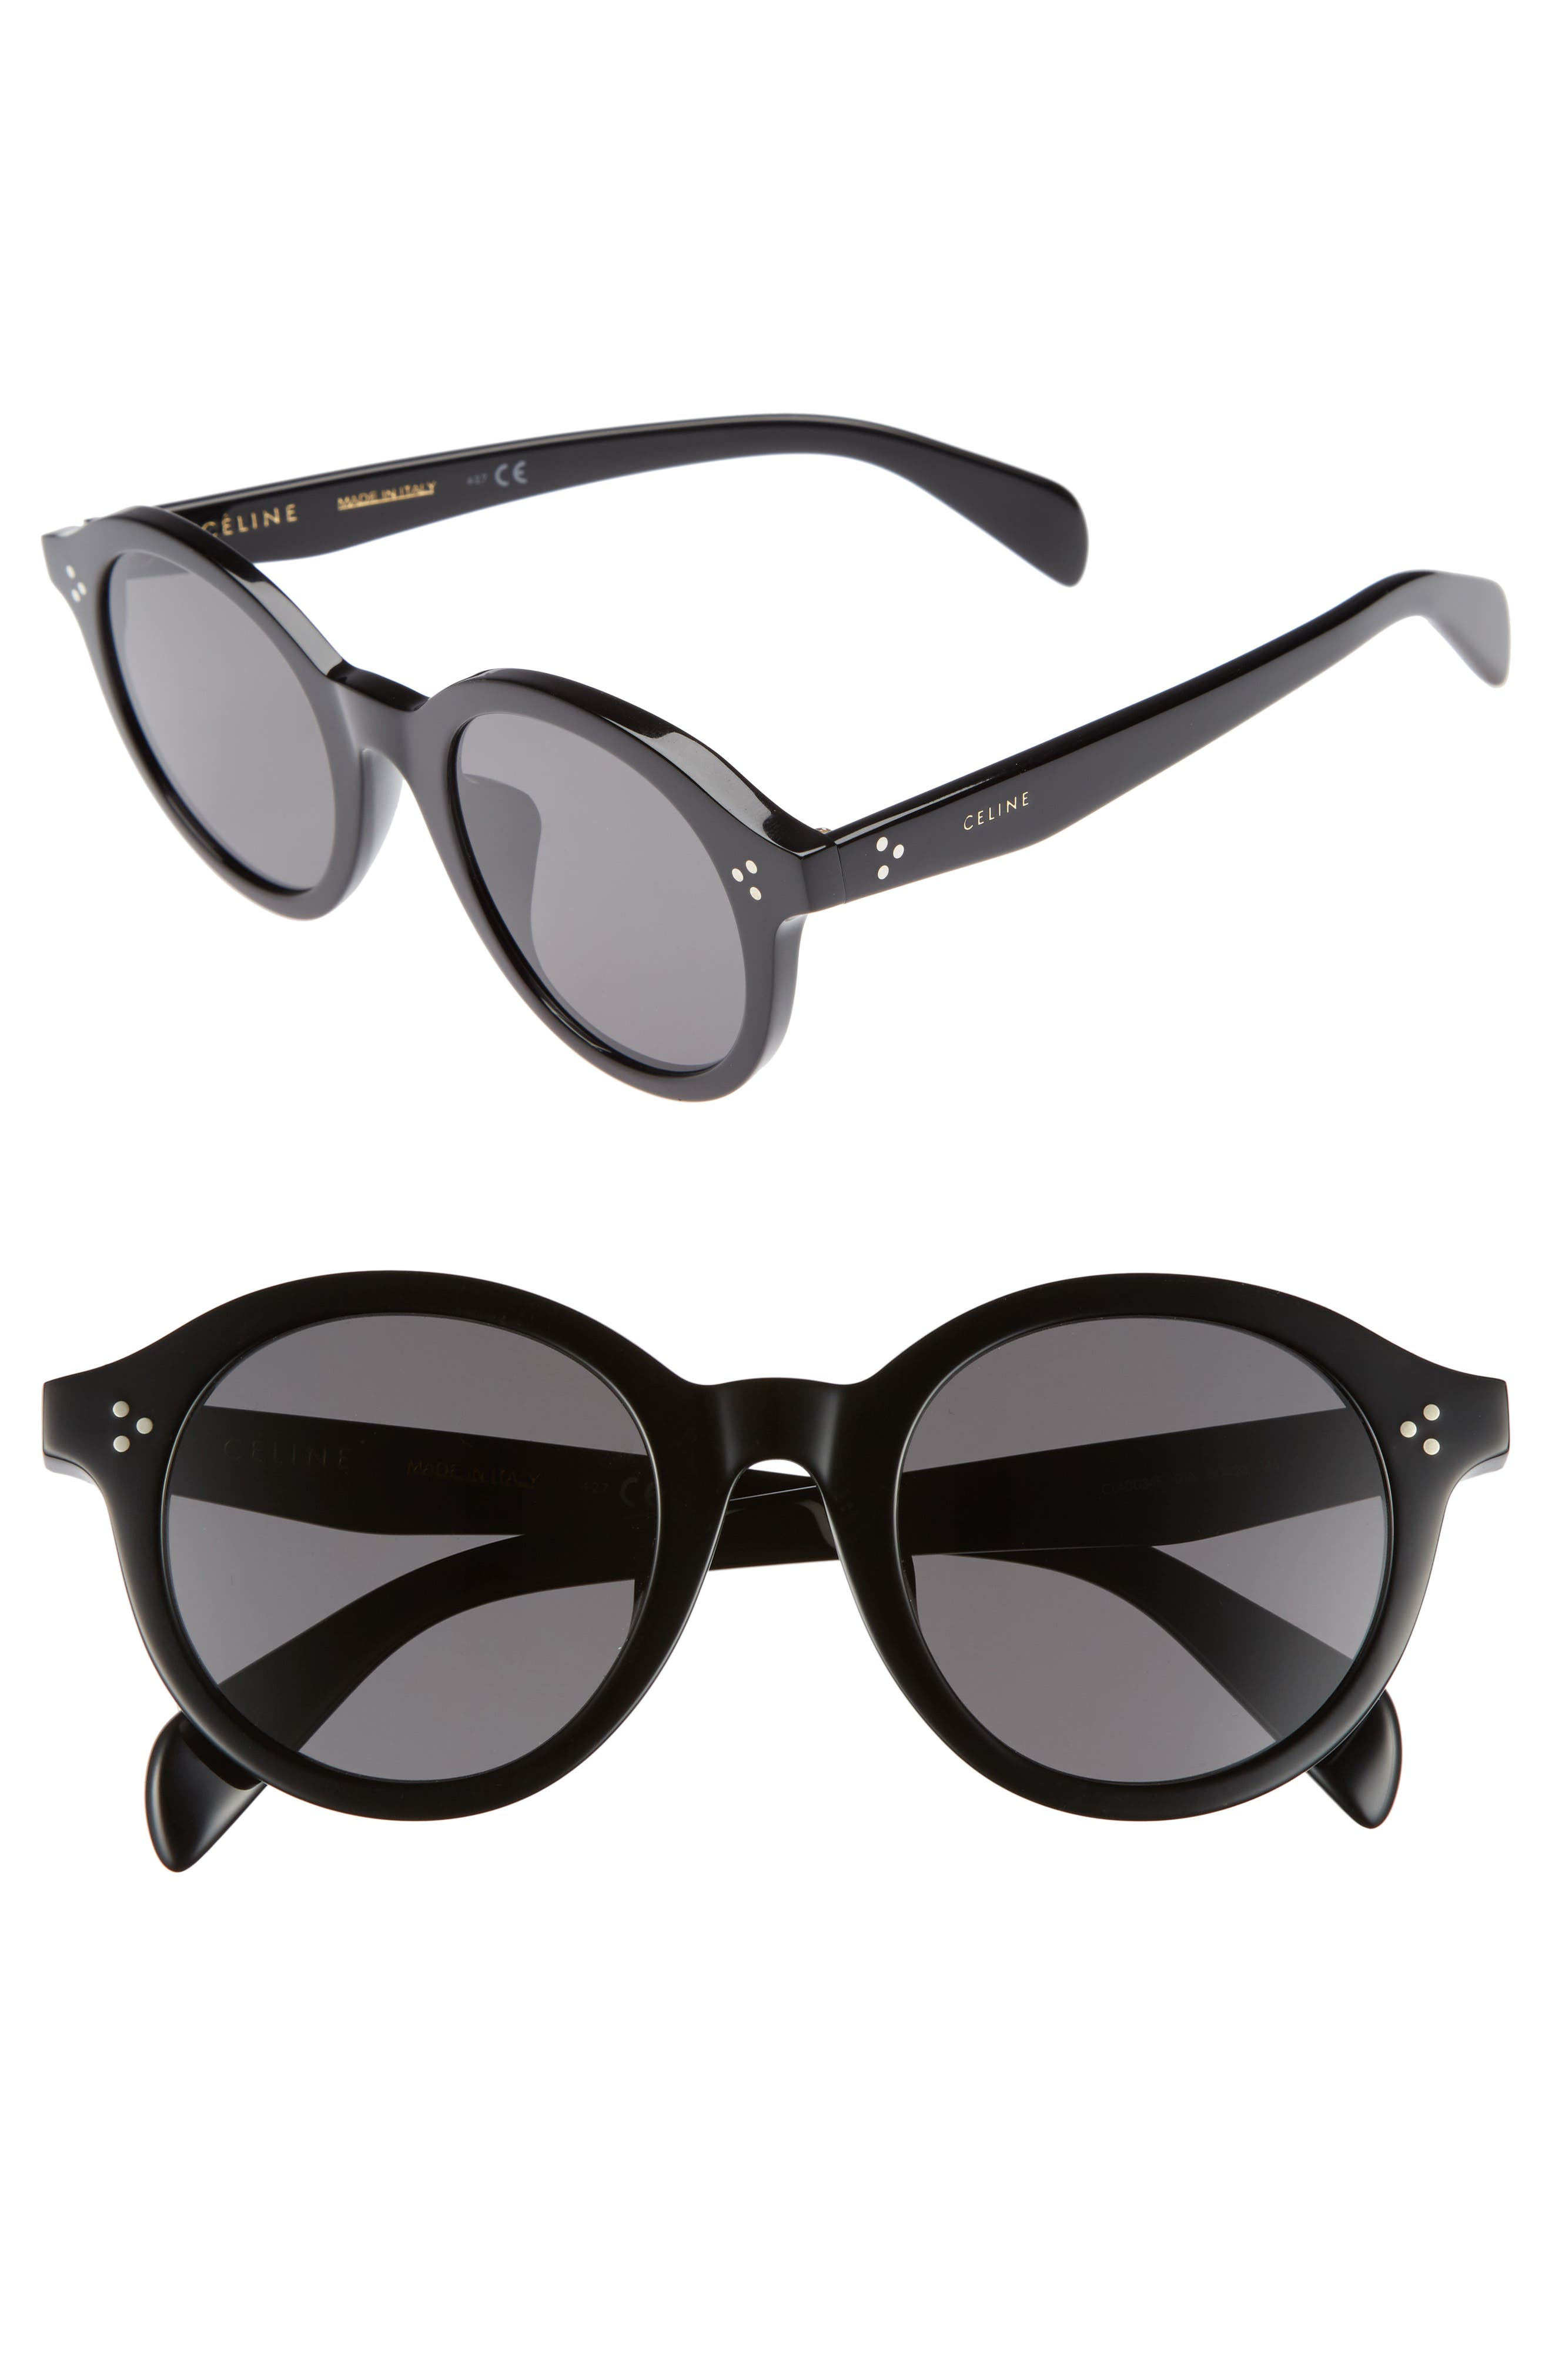 Main Image - Céline Special Fit 50mm Round Sunglasses